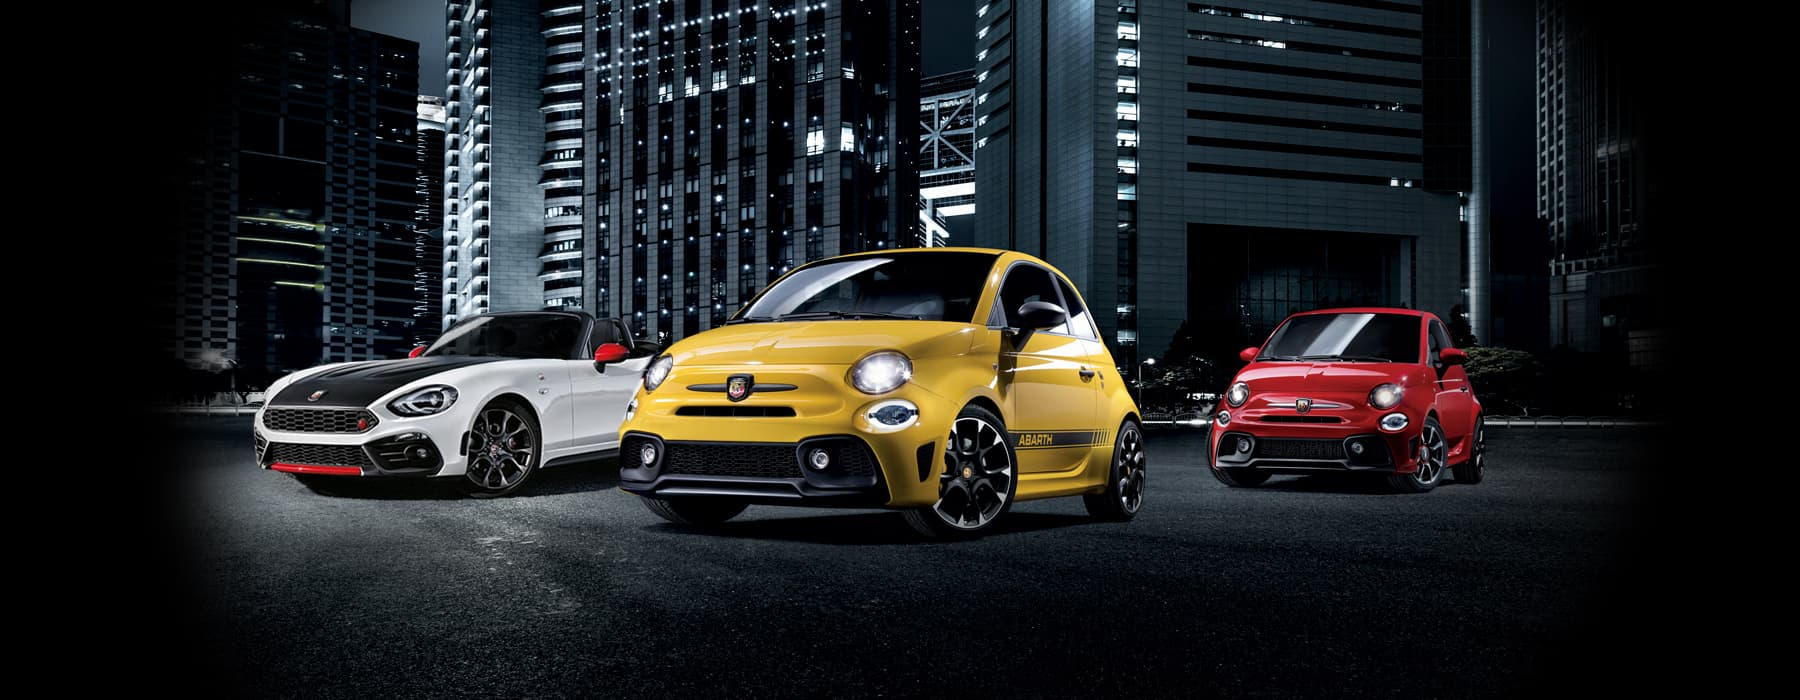 New 17 plate Abarth